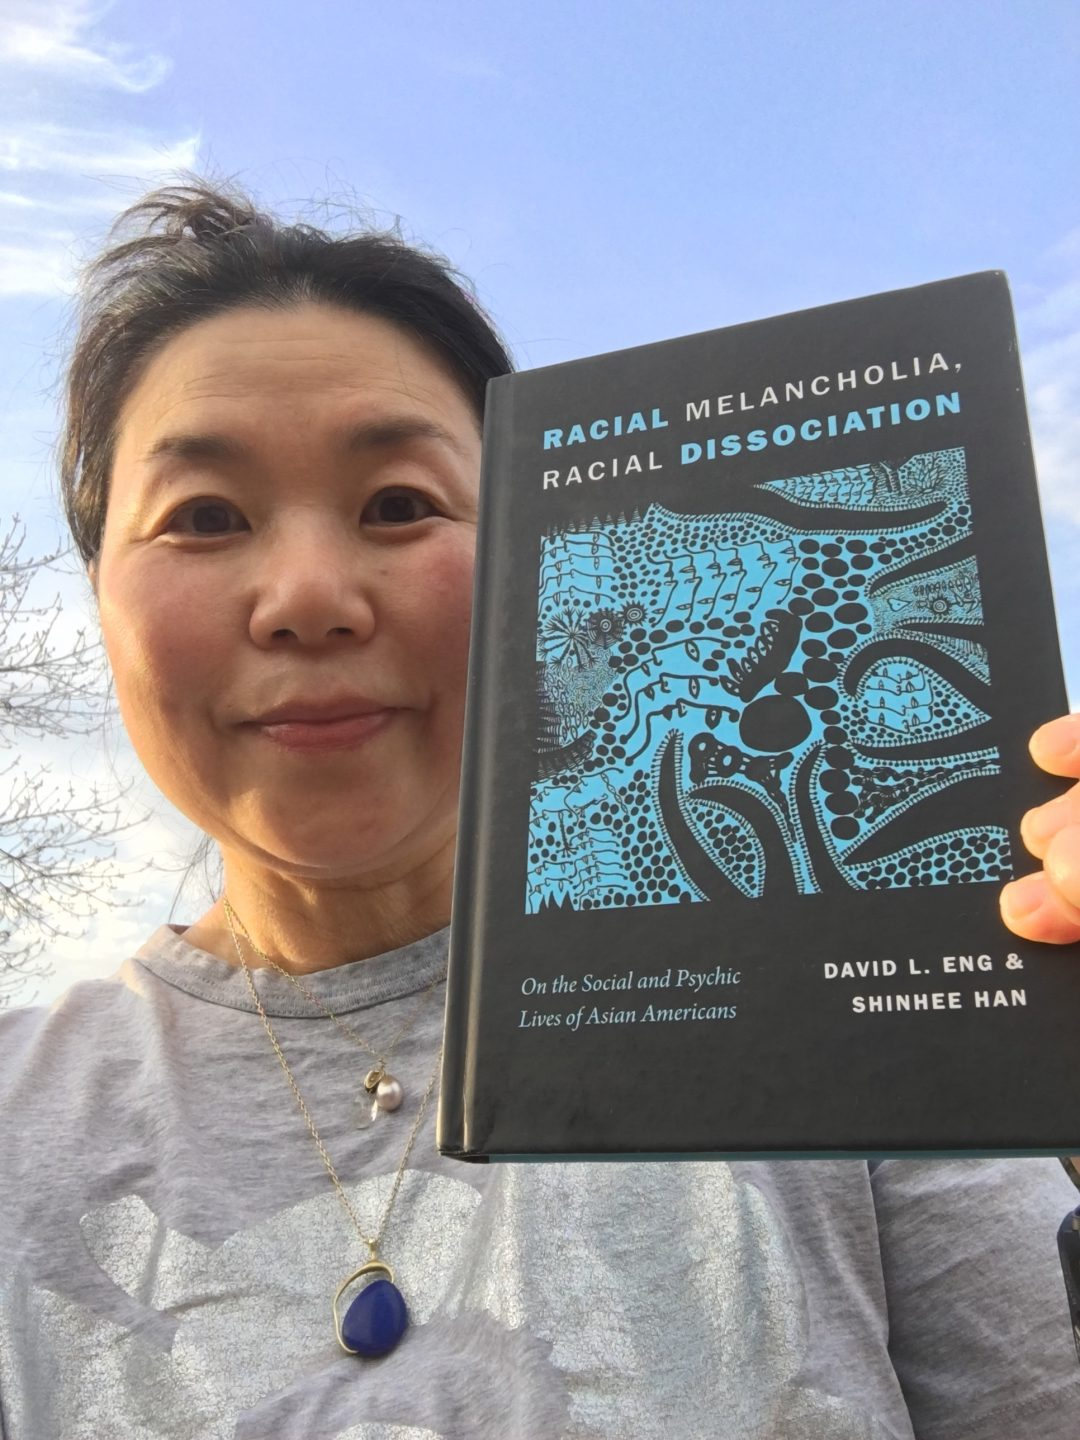 Shinhee Han with the book she co-authored